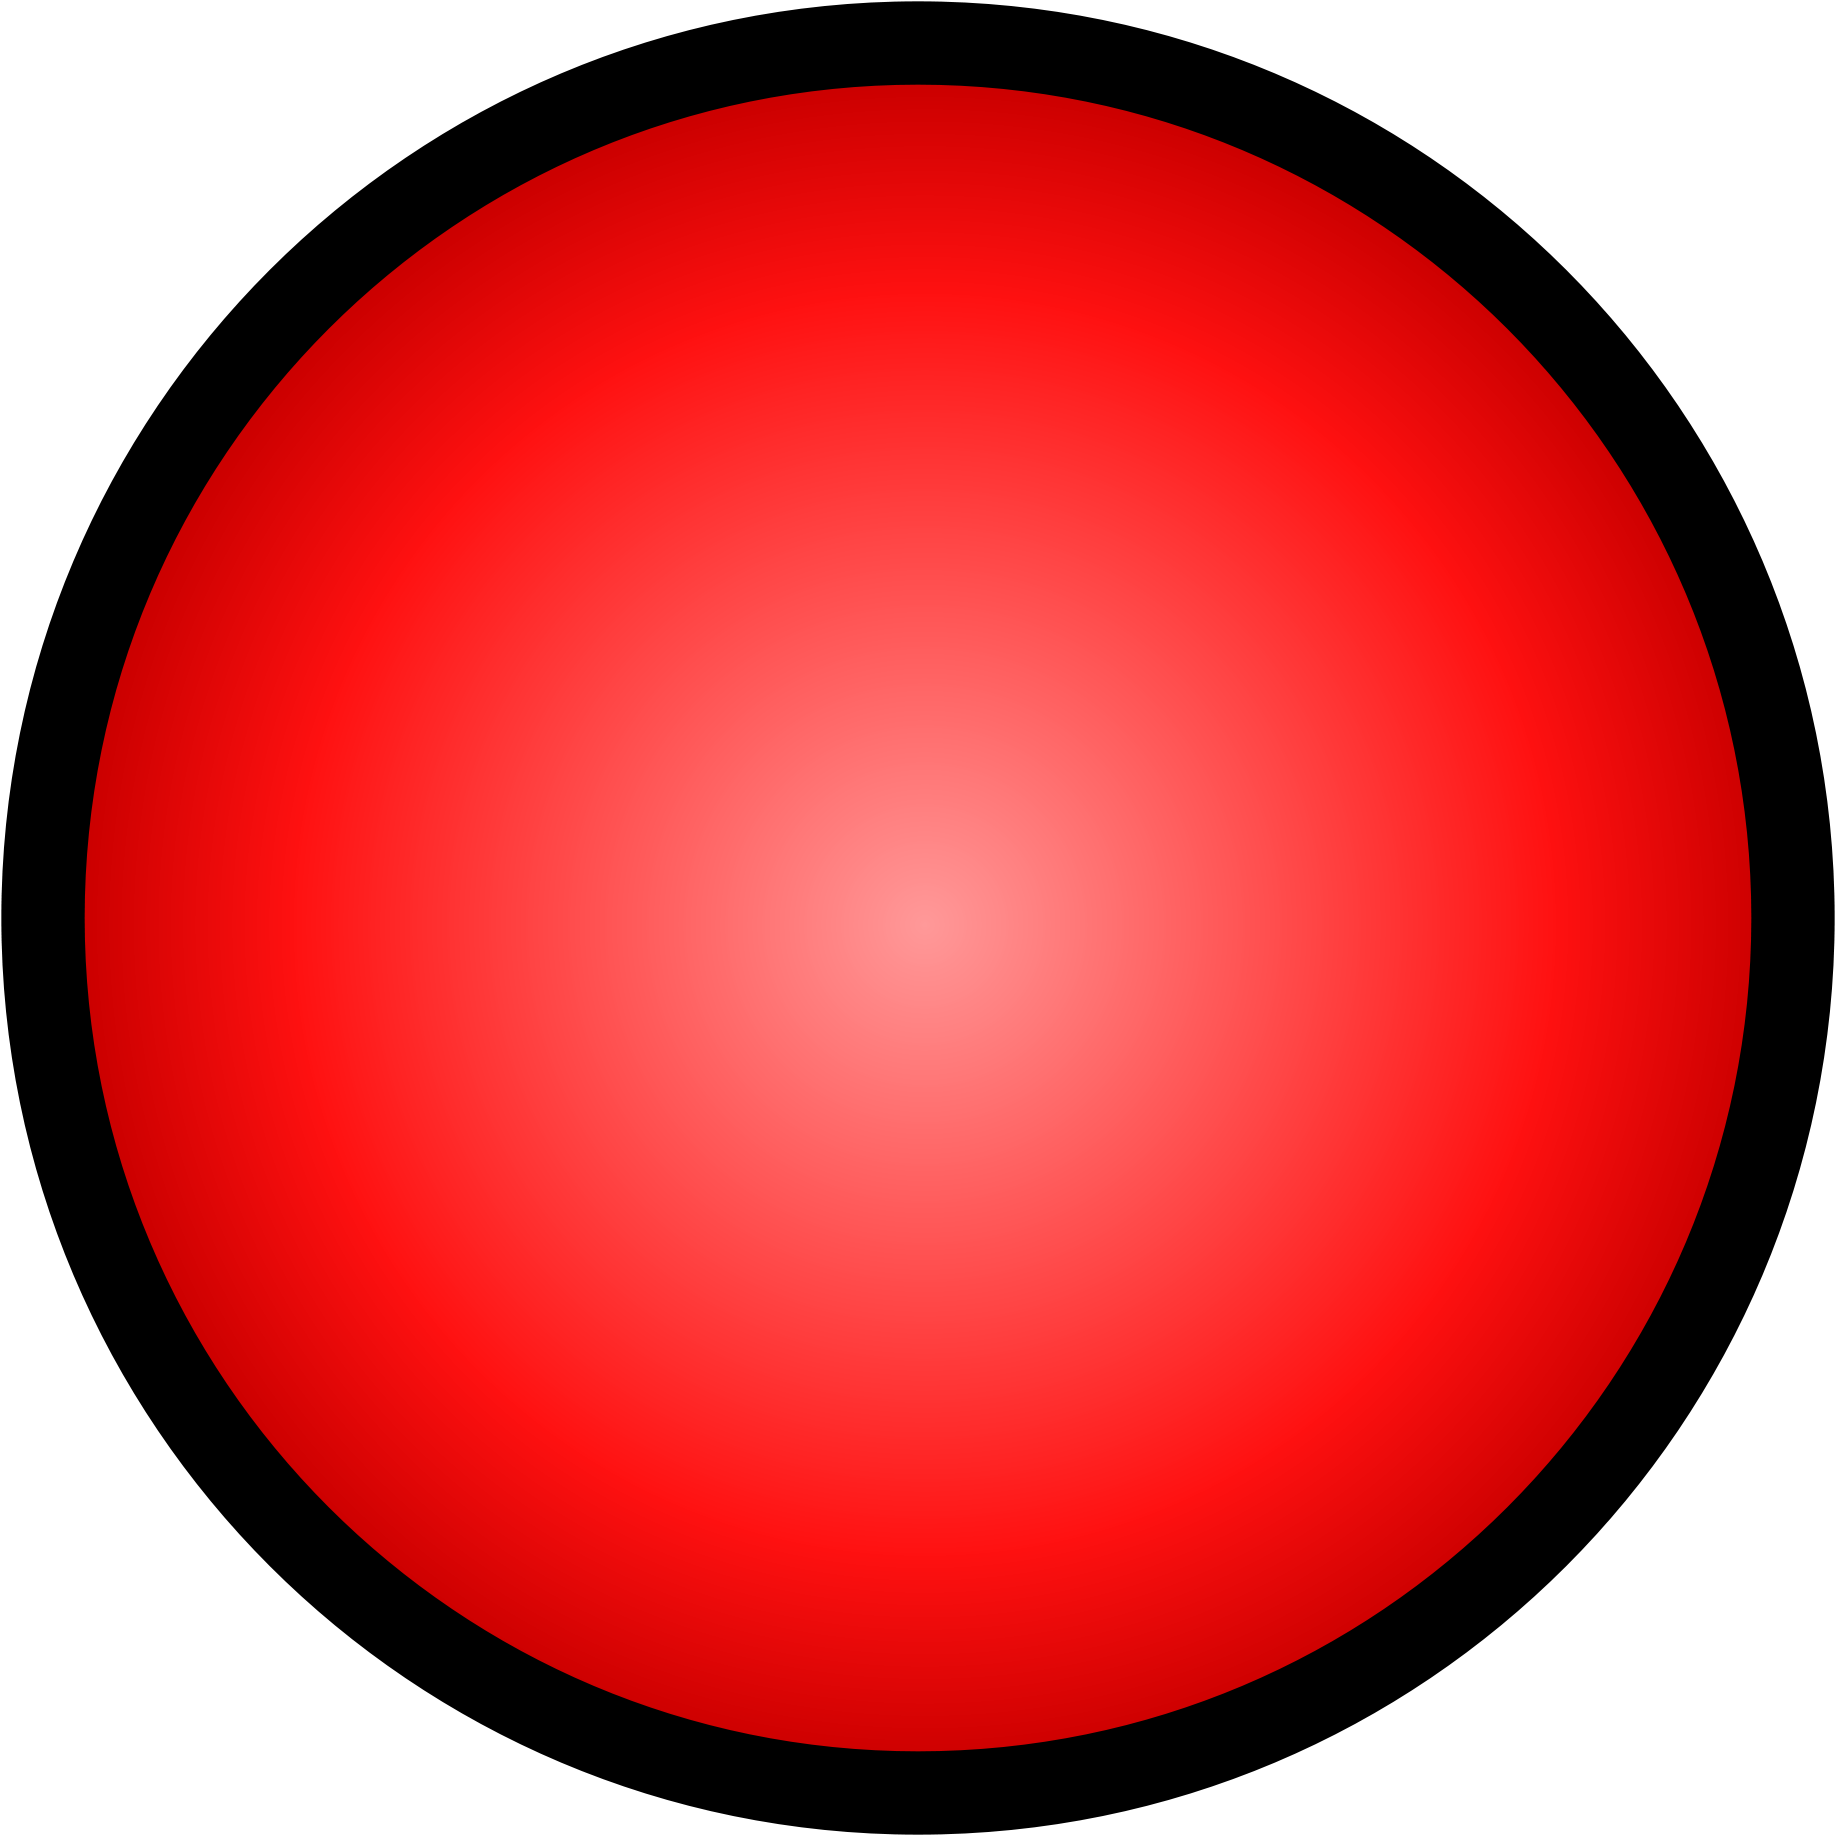 Open - Red Circle Black Outline (2000x2000), Png Download